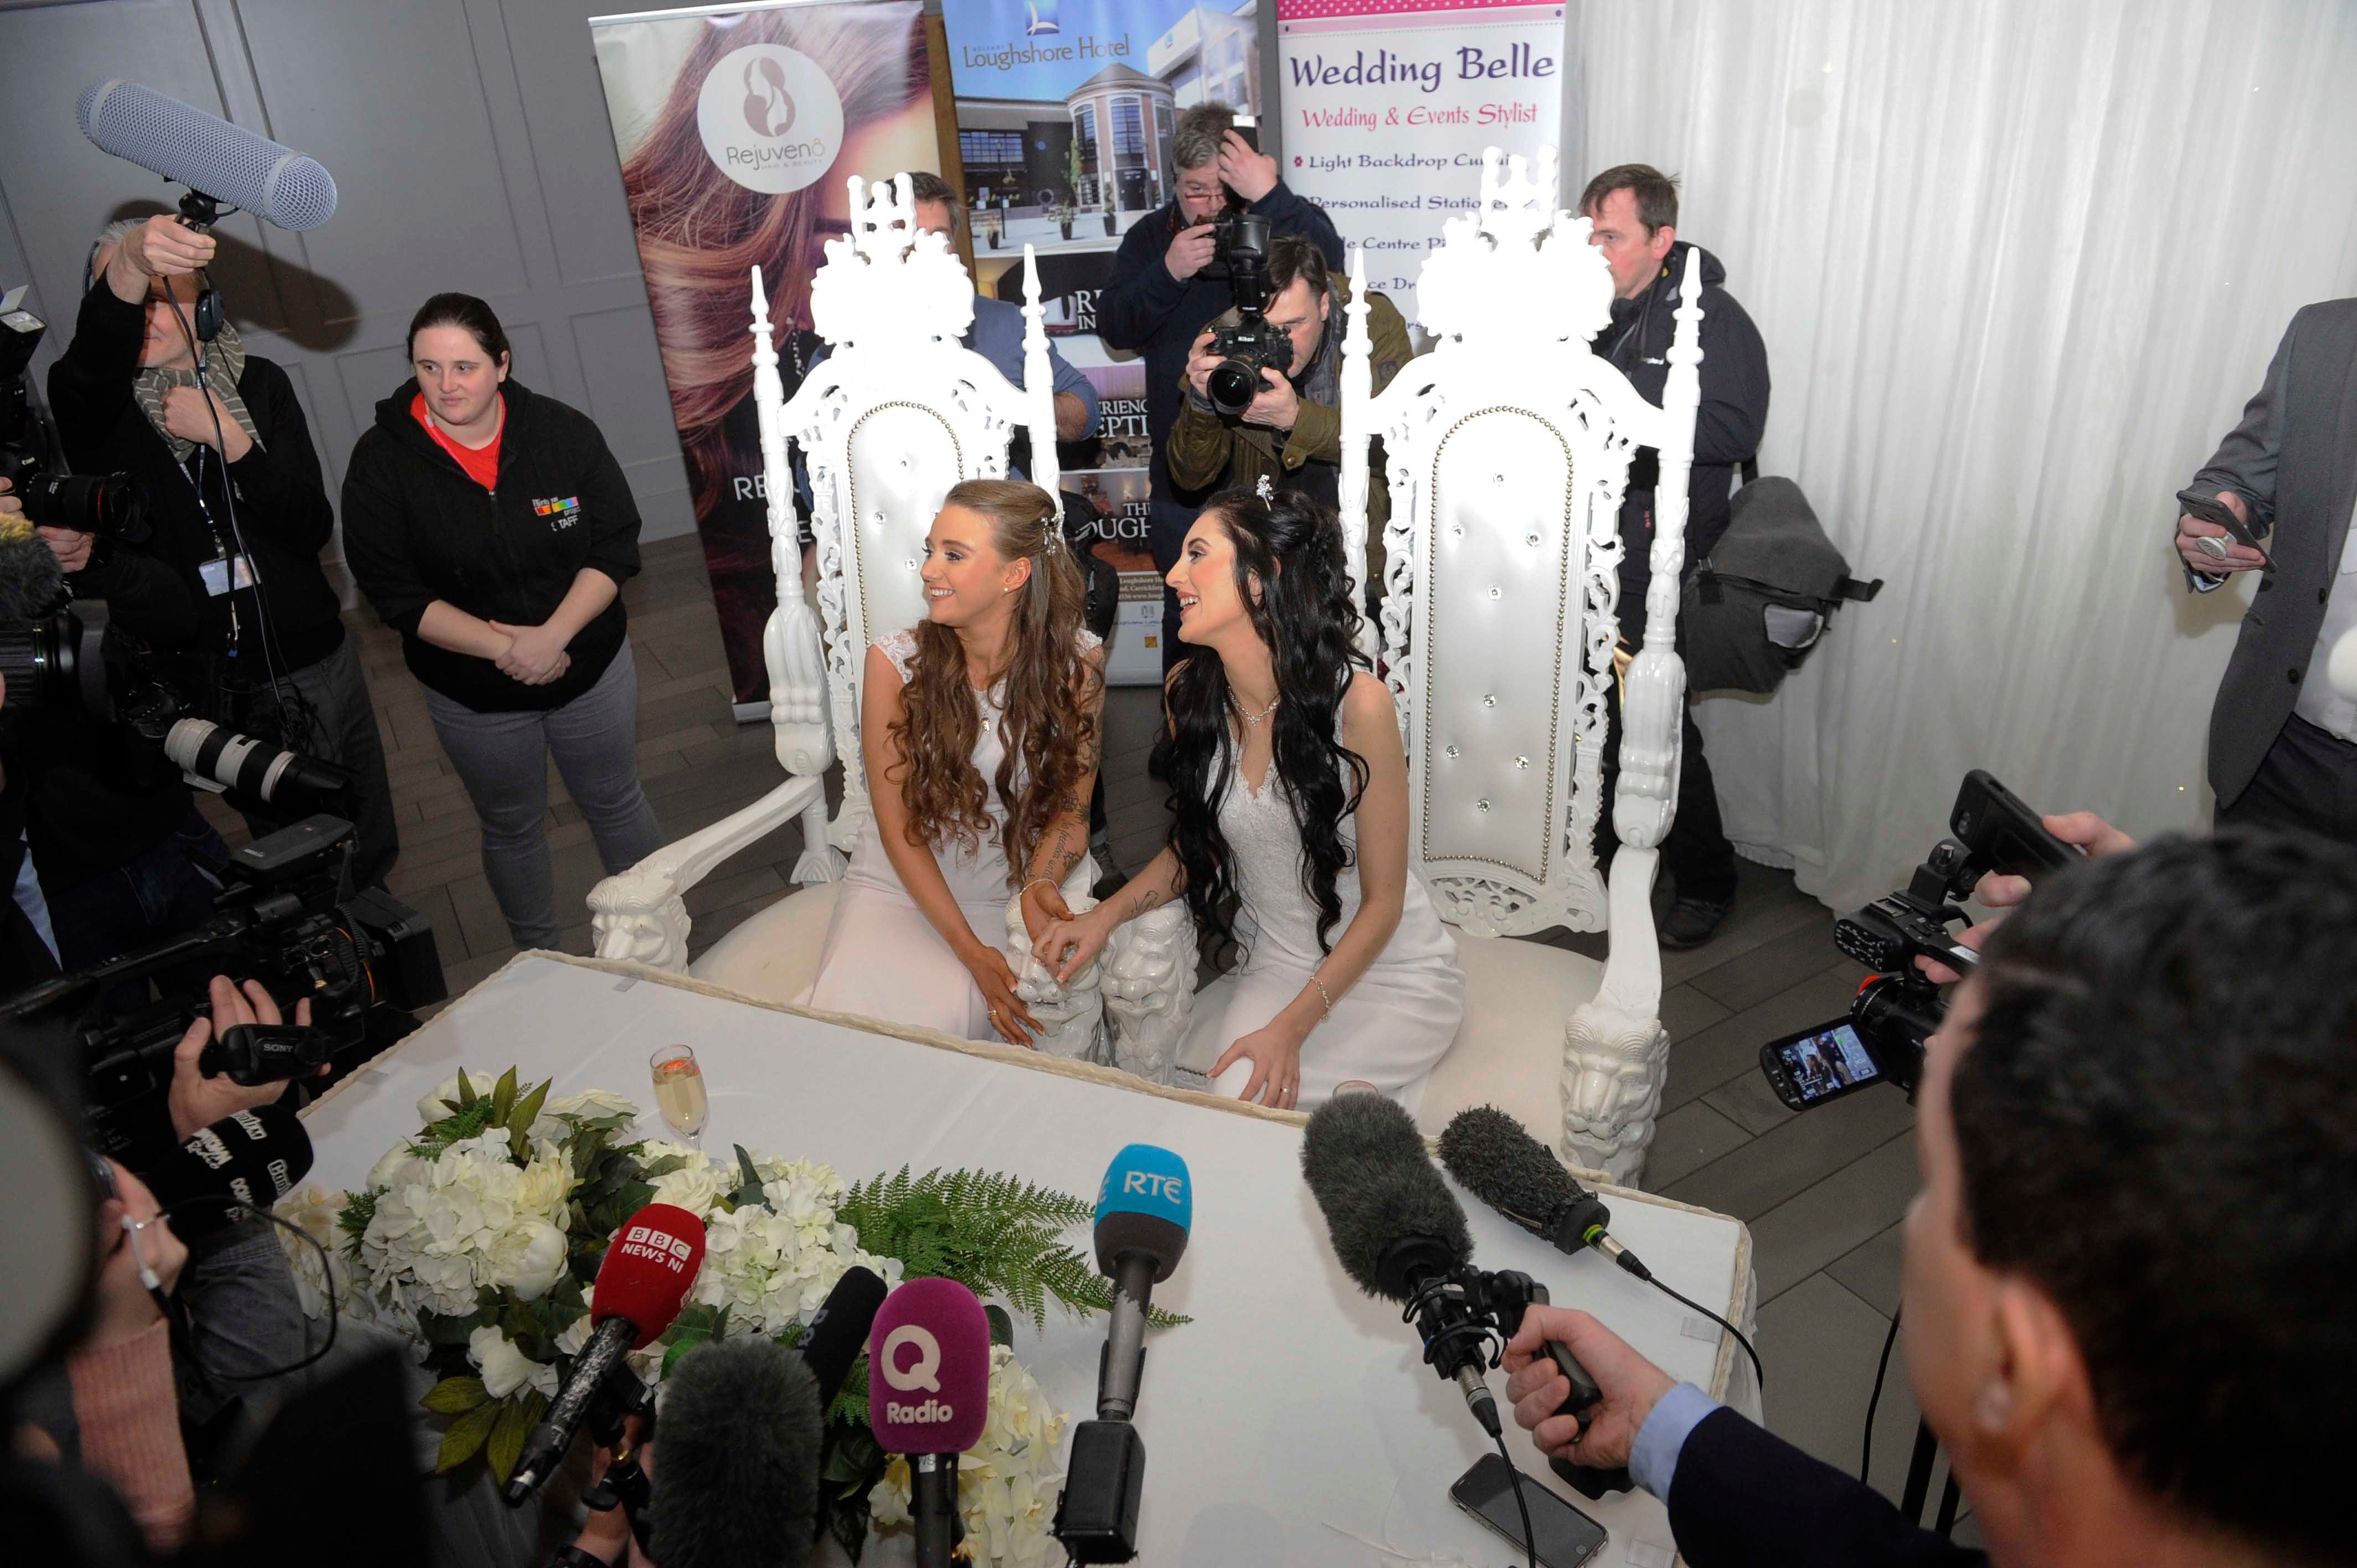 The couple from Belfast is the first same sex couple got married in Northern Ireland.